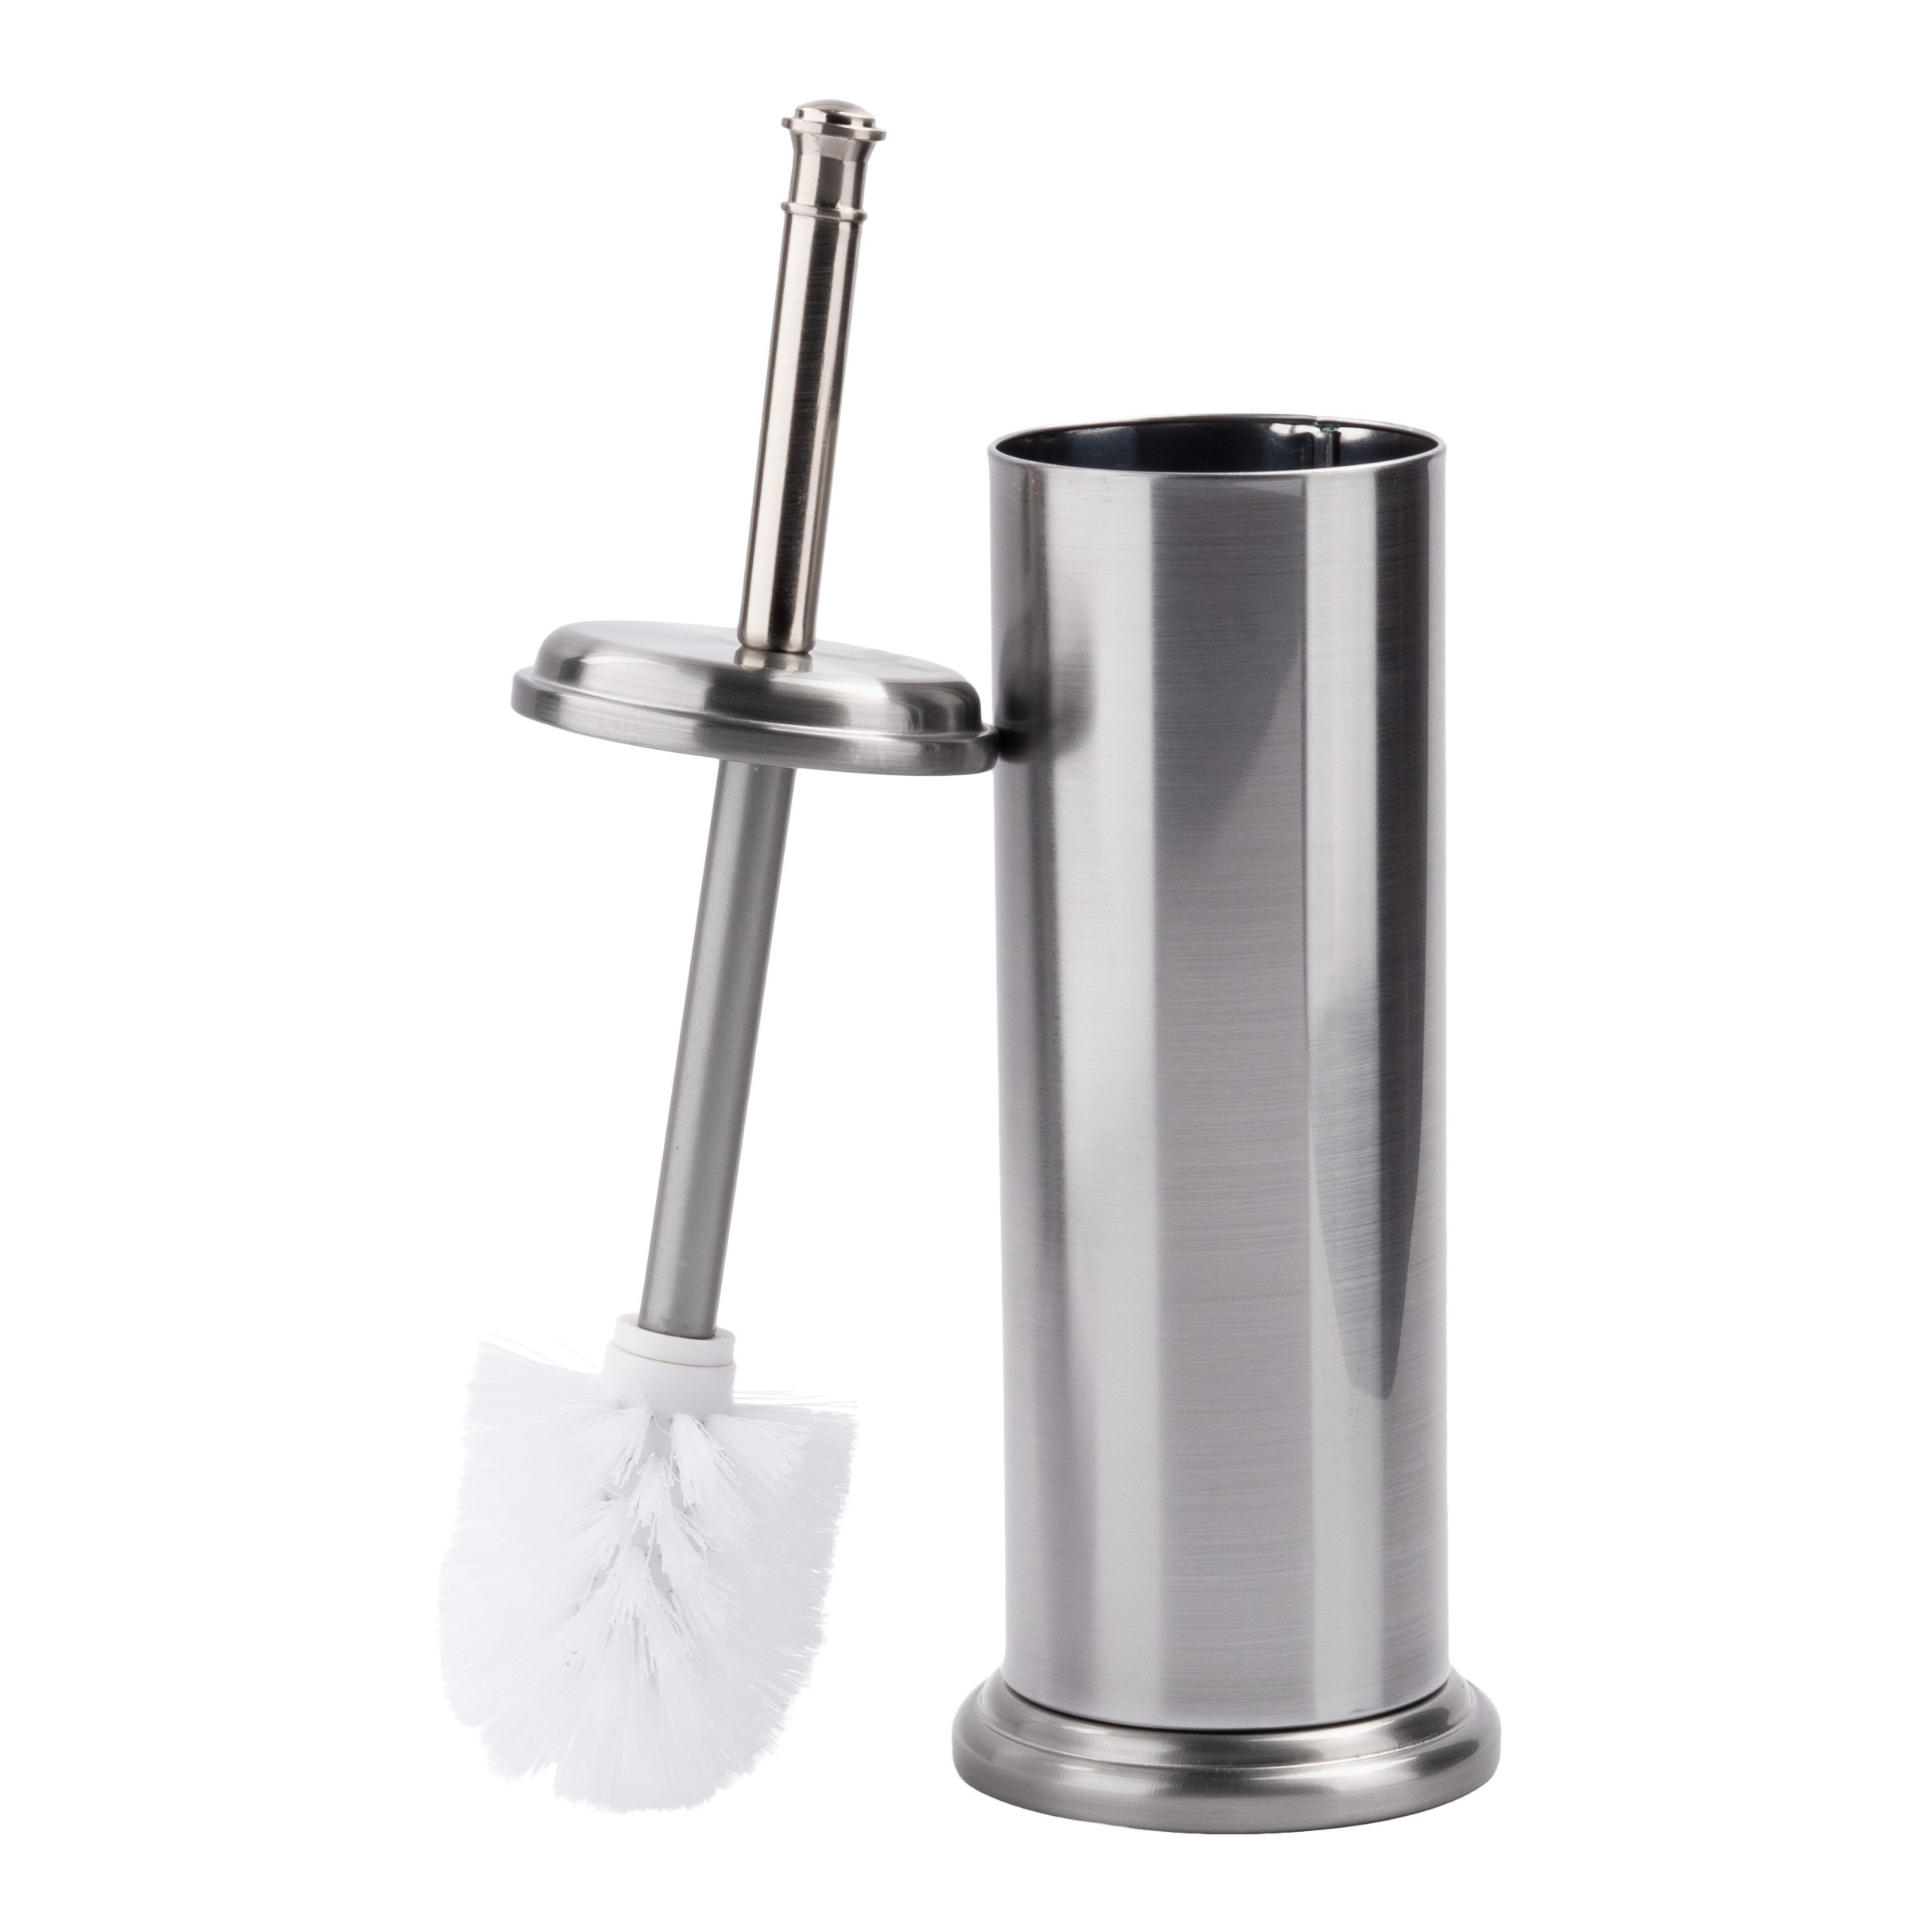 LDR 164 M6459BN Toilet Brush with Canister Brushed Nickel Finish by LDR Industries